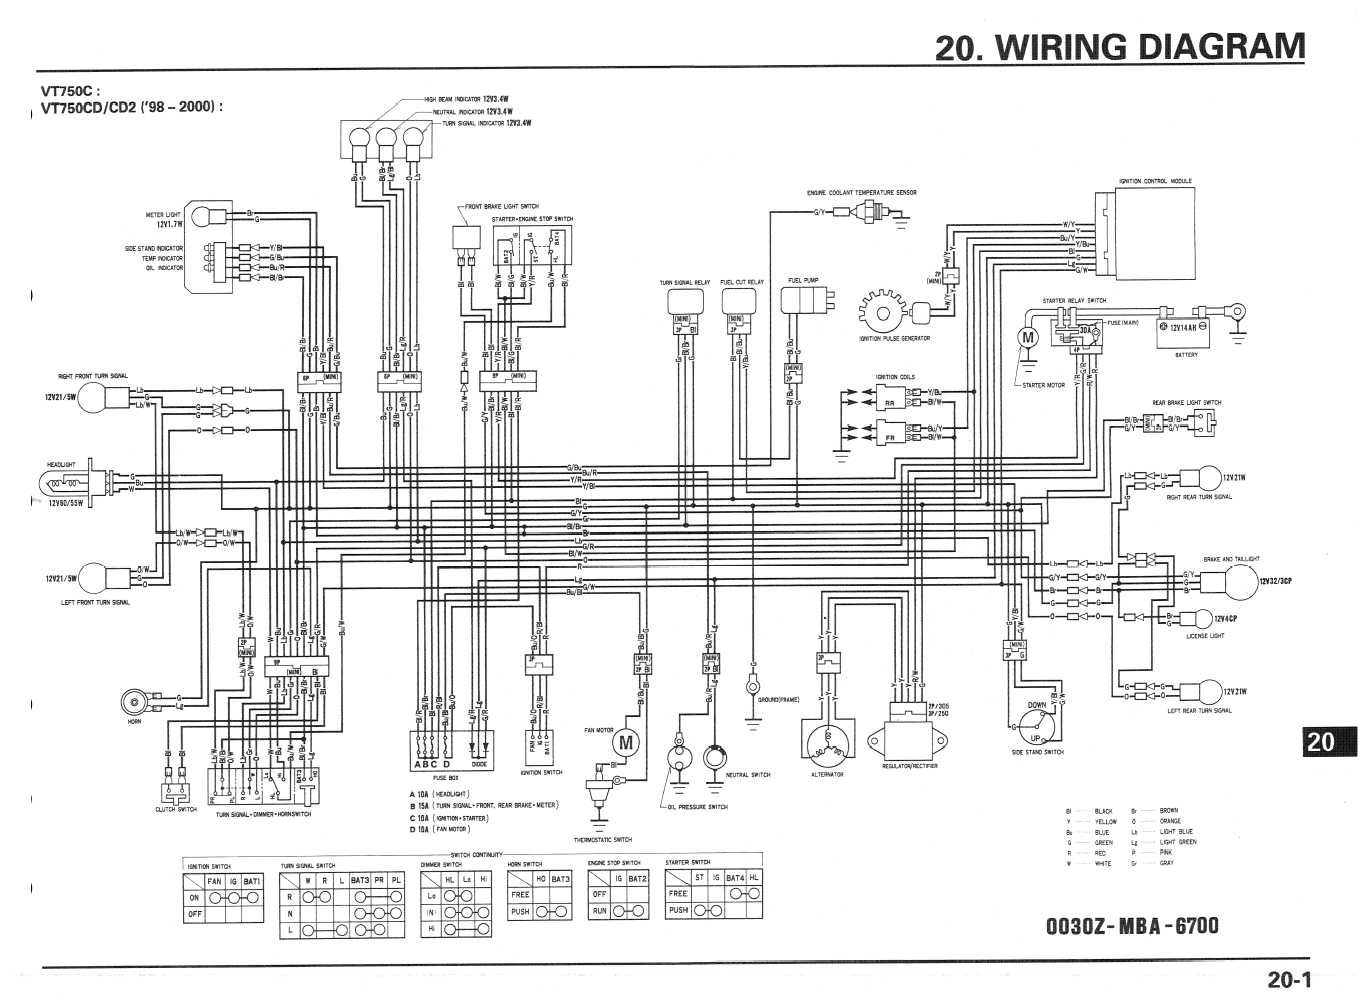 1996 honda shadow 1100 wiring system diagram wiring diagram rh casamagdalena us Honda Shadow VT1100 Wiring and Electrical System Diagram 1998 Honda Shadow Spirit 1100